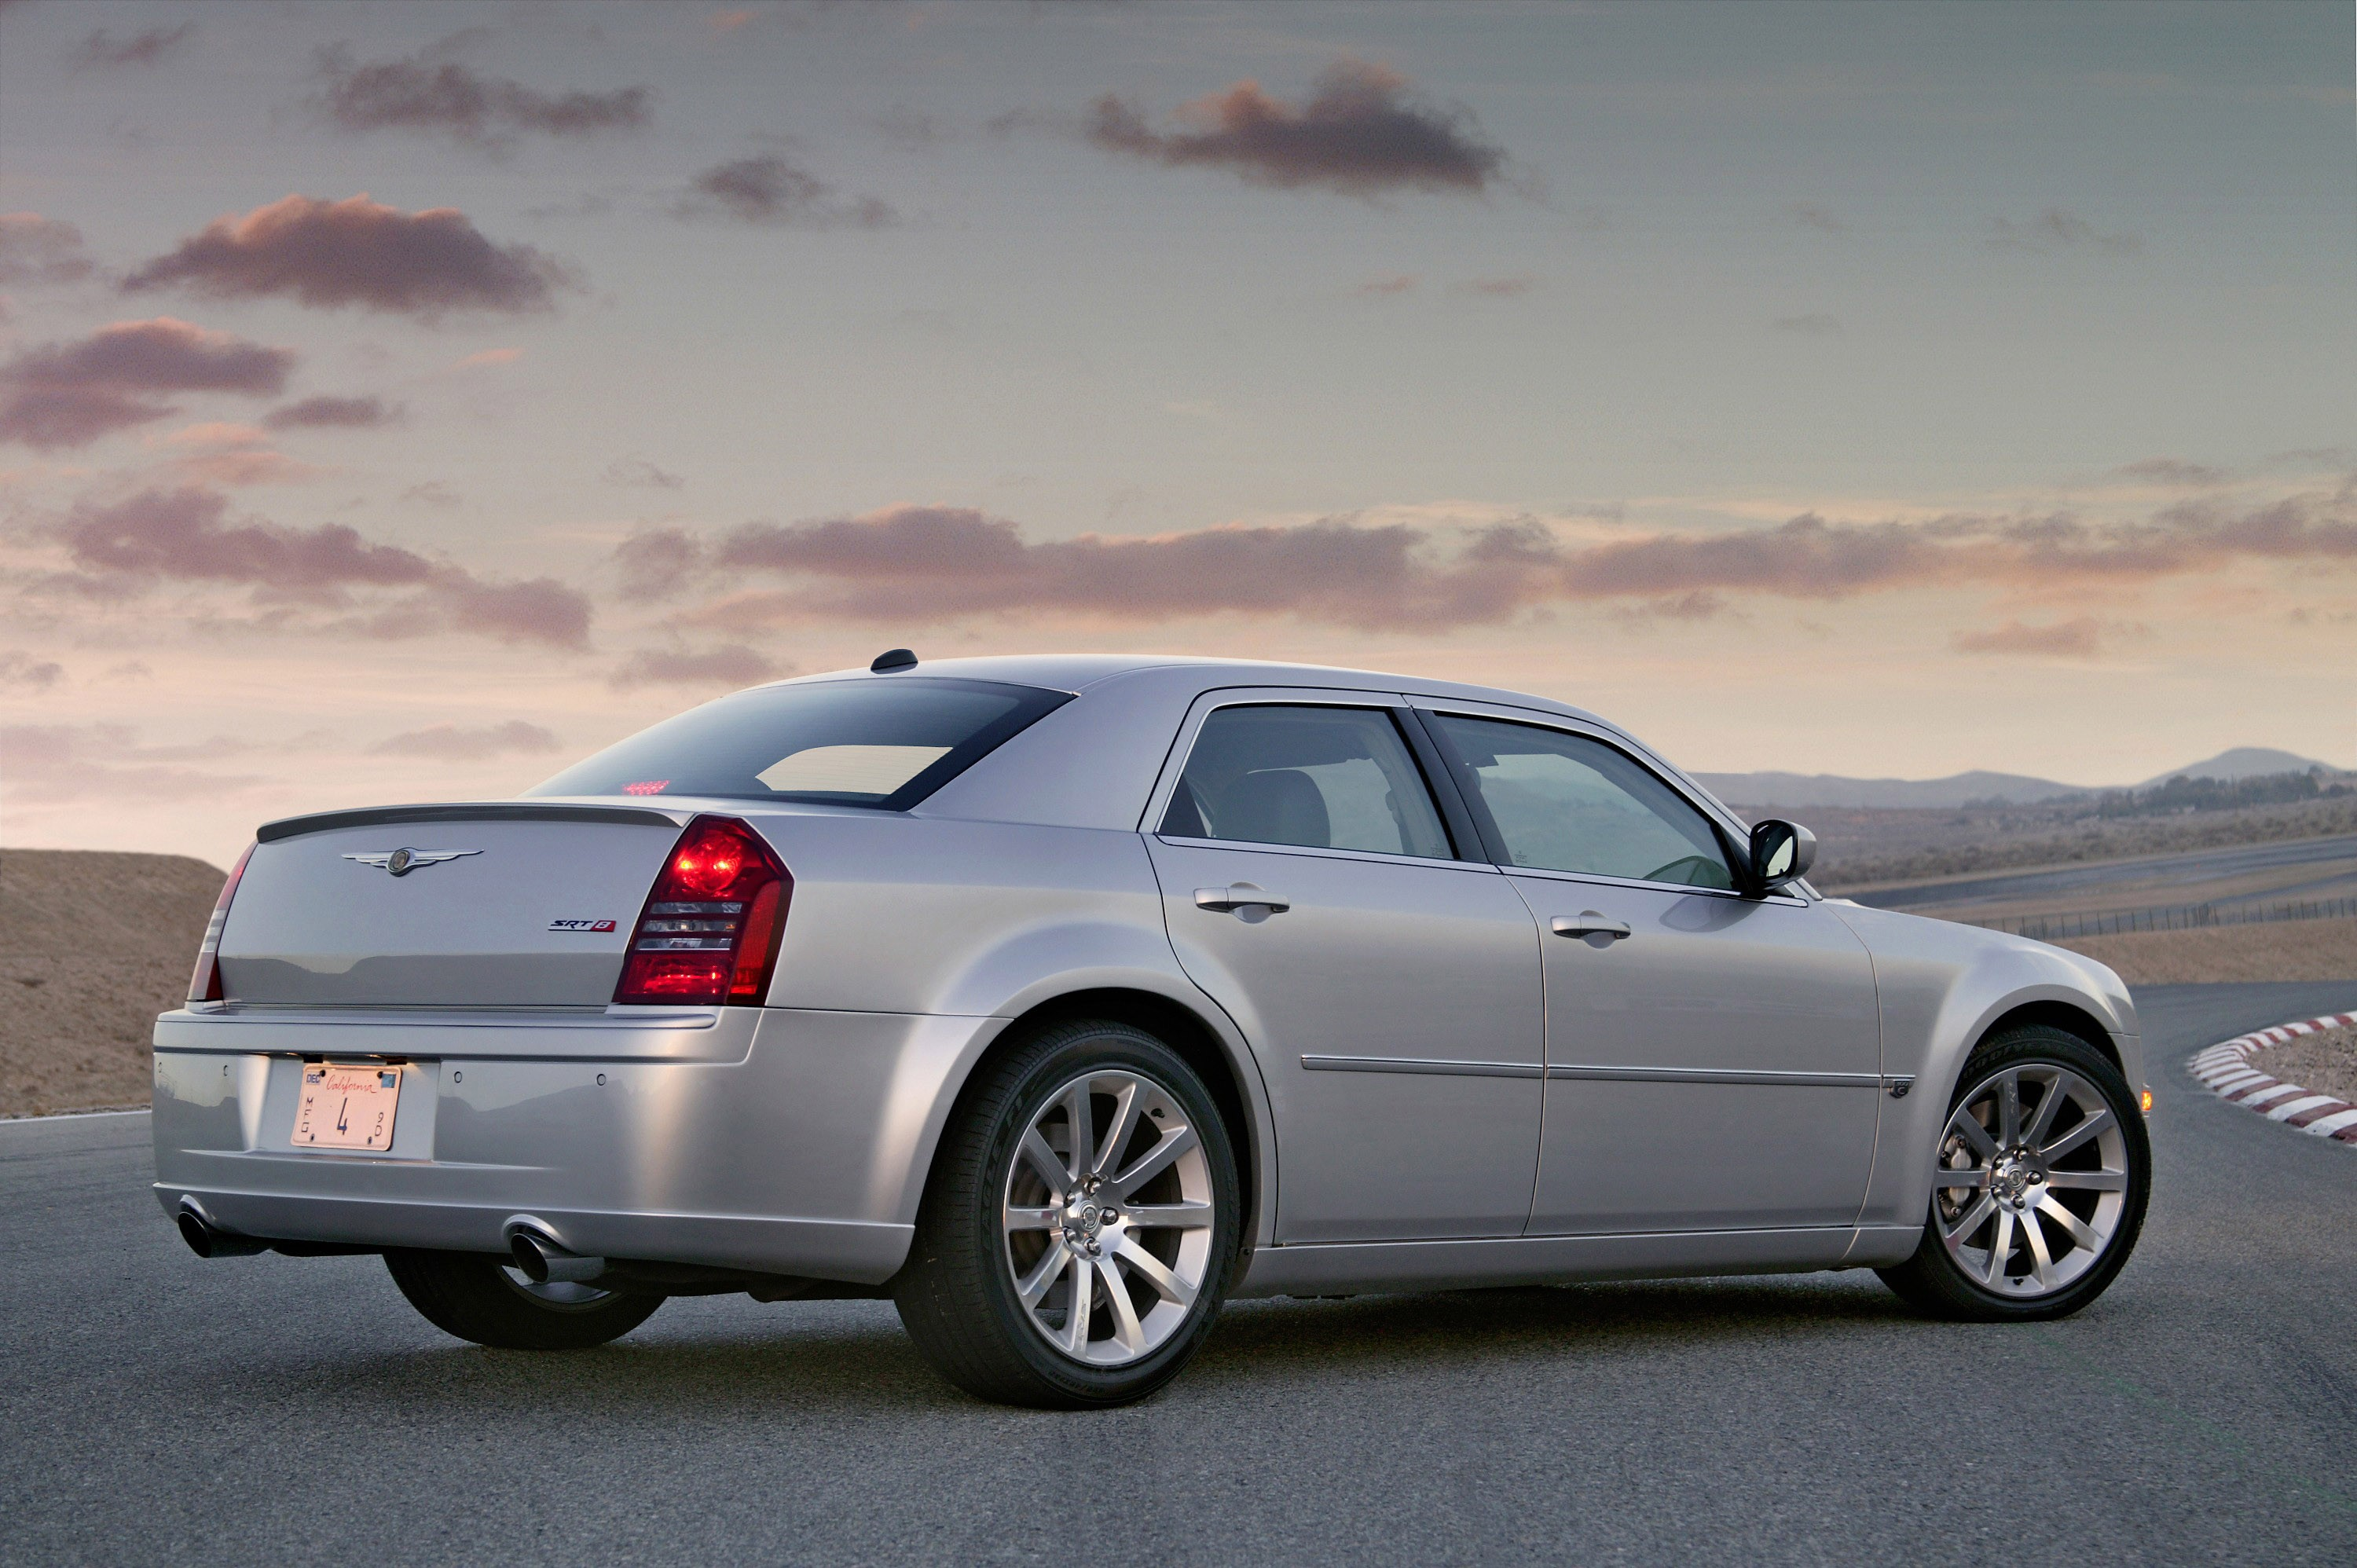 Chrysler 300 2016 Hemi >> CHRYSLER 300C SRT8 specs & photos - 2005, 2006, 2007, 2008, 2009, 2010 - autoevolution